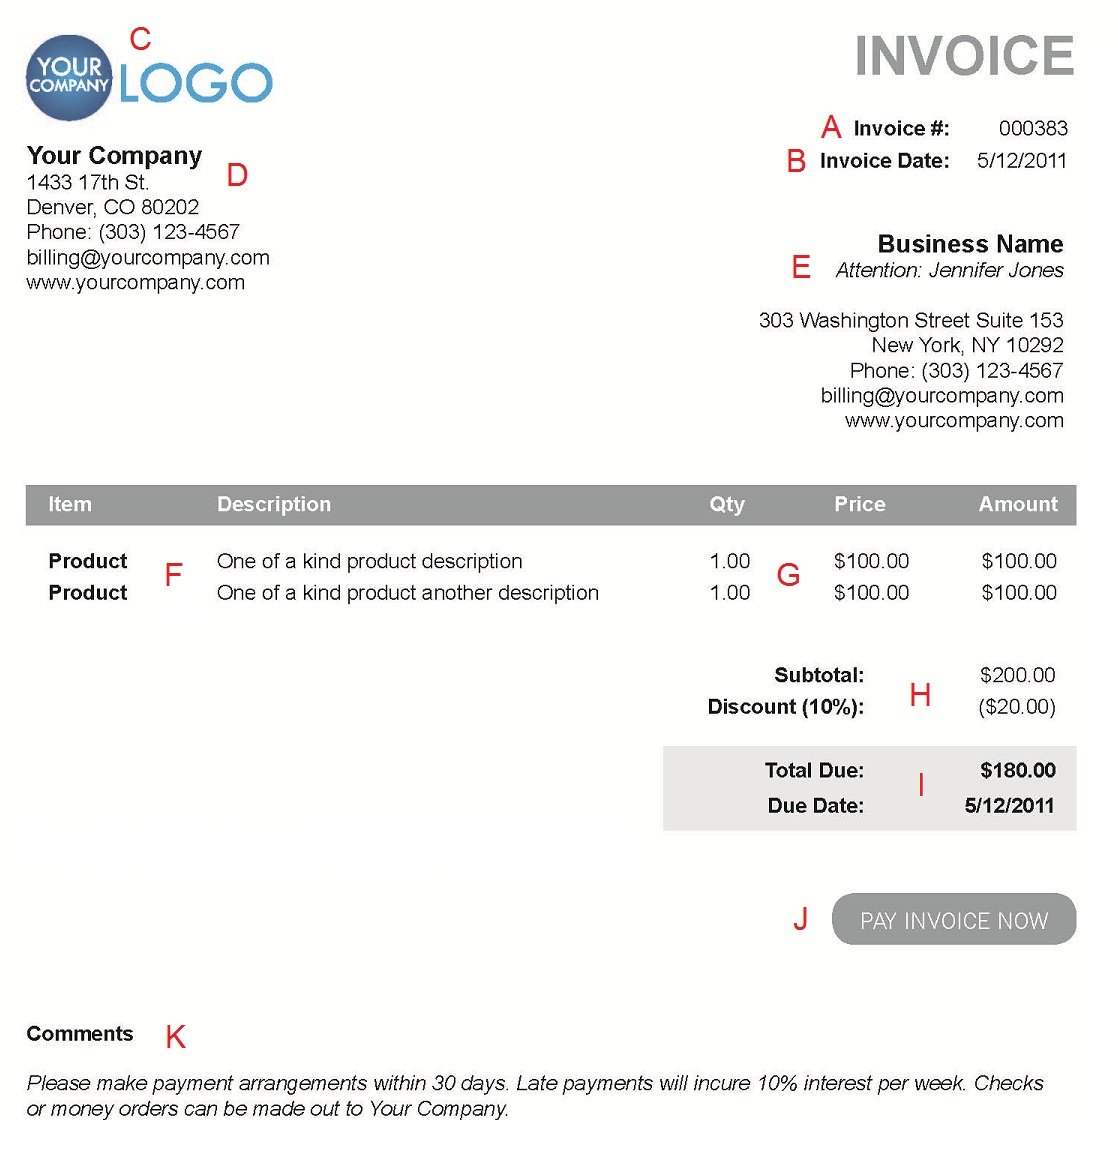 Opposenewapstandardsus  Surprising The  Different Sections Of An Electronic Payment Invoice With Lovely A  With Easy On The Eye Acknowledge The Receipt Also Flight Receipt In Addition Girl Scout Cookie Receipt Template And Alien Receipt Number I As Well As Electronic Deposit Receipt Additionally Jackson County Missouri Personal Property Tax Receipt From Paysimplecom With Opposenewapstandardsus  Lovely The  Different Sections Of An Electronic Payment Invoice With Easy On The Eye A  And Surprising Acknowledge The Receipt Also Flight Receipt In Addition Girl Scout Cookie Receipt Template From Paysimplecom